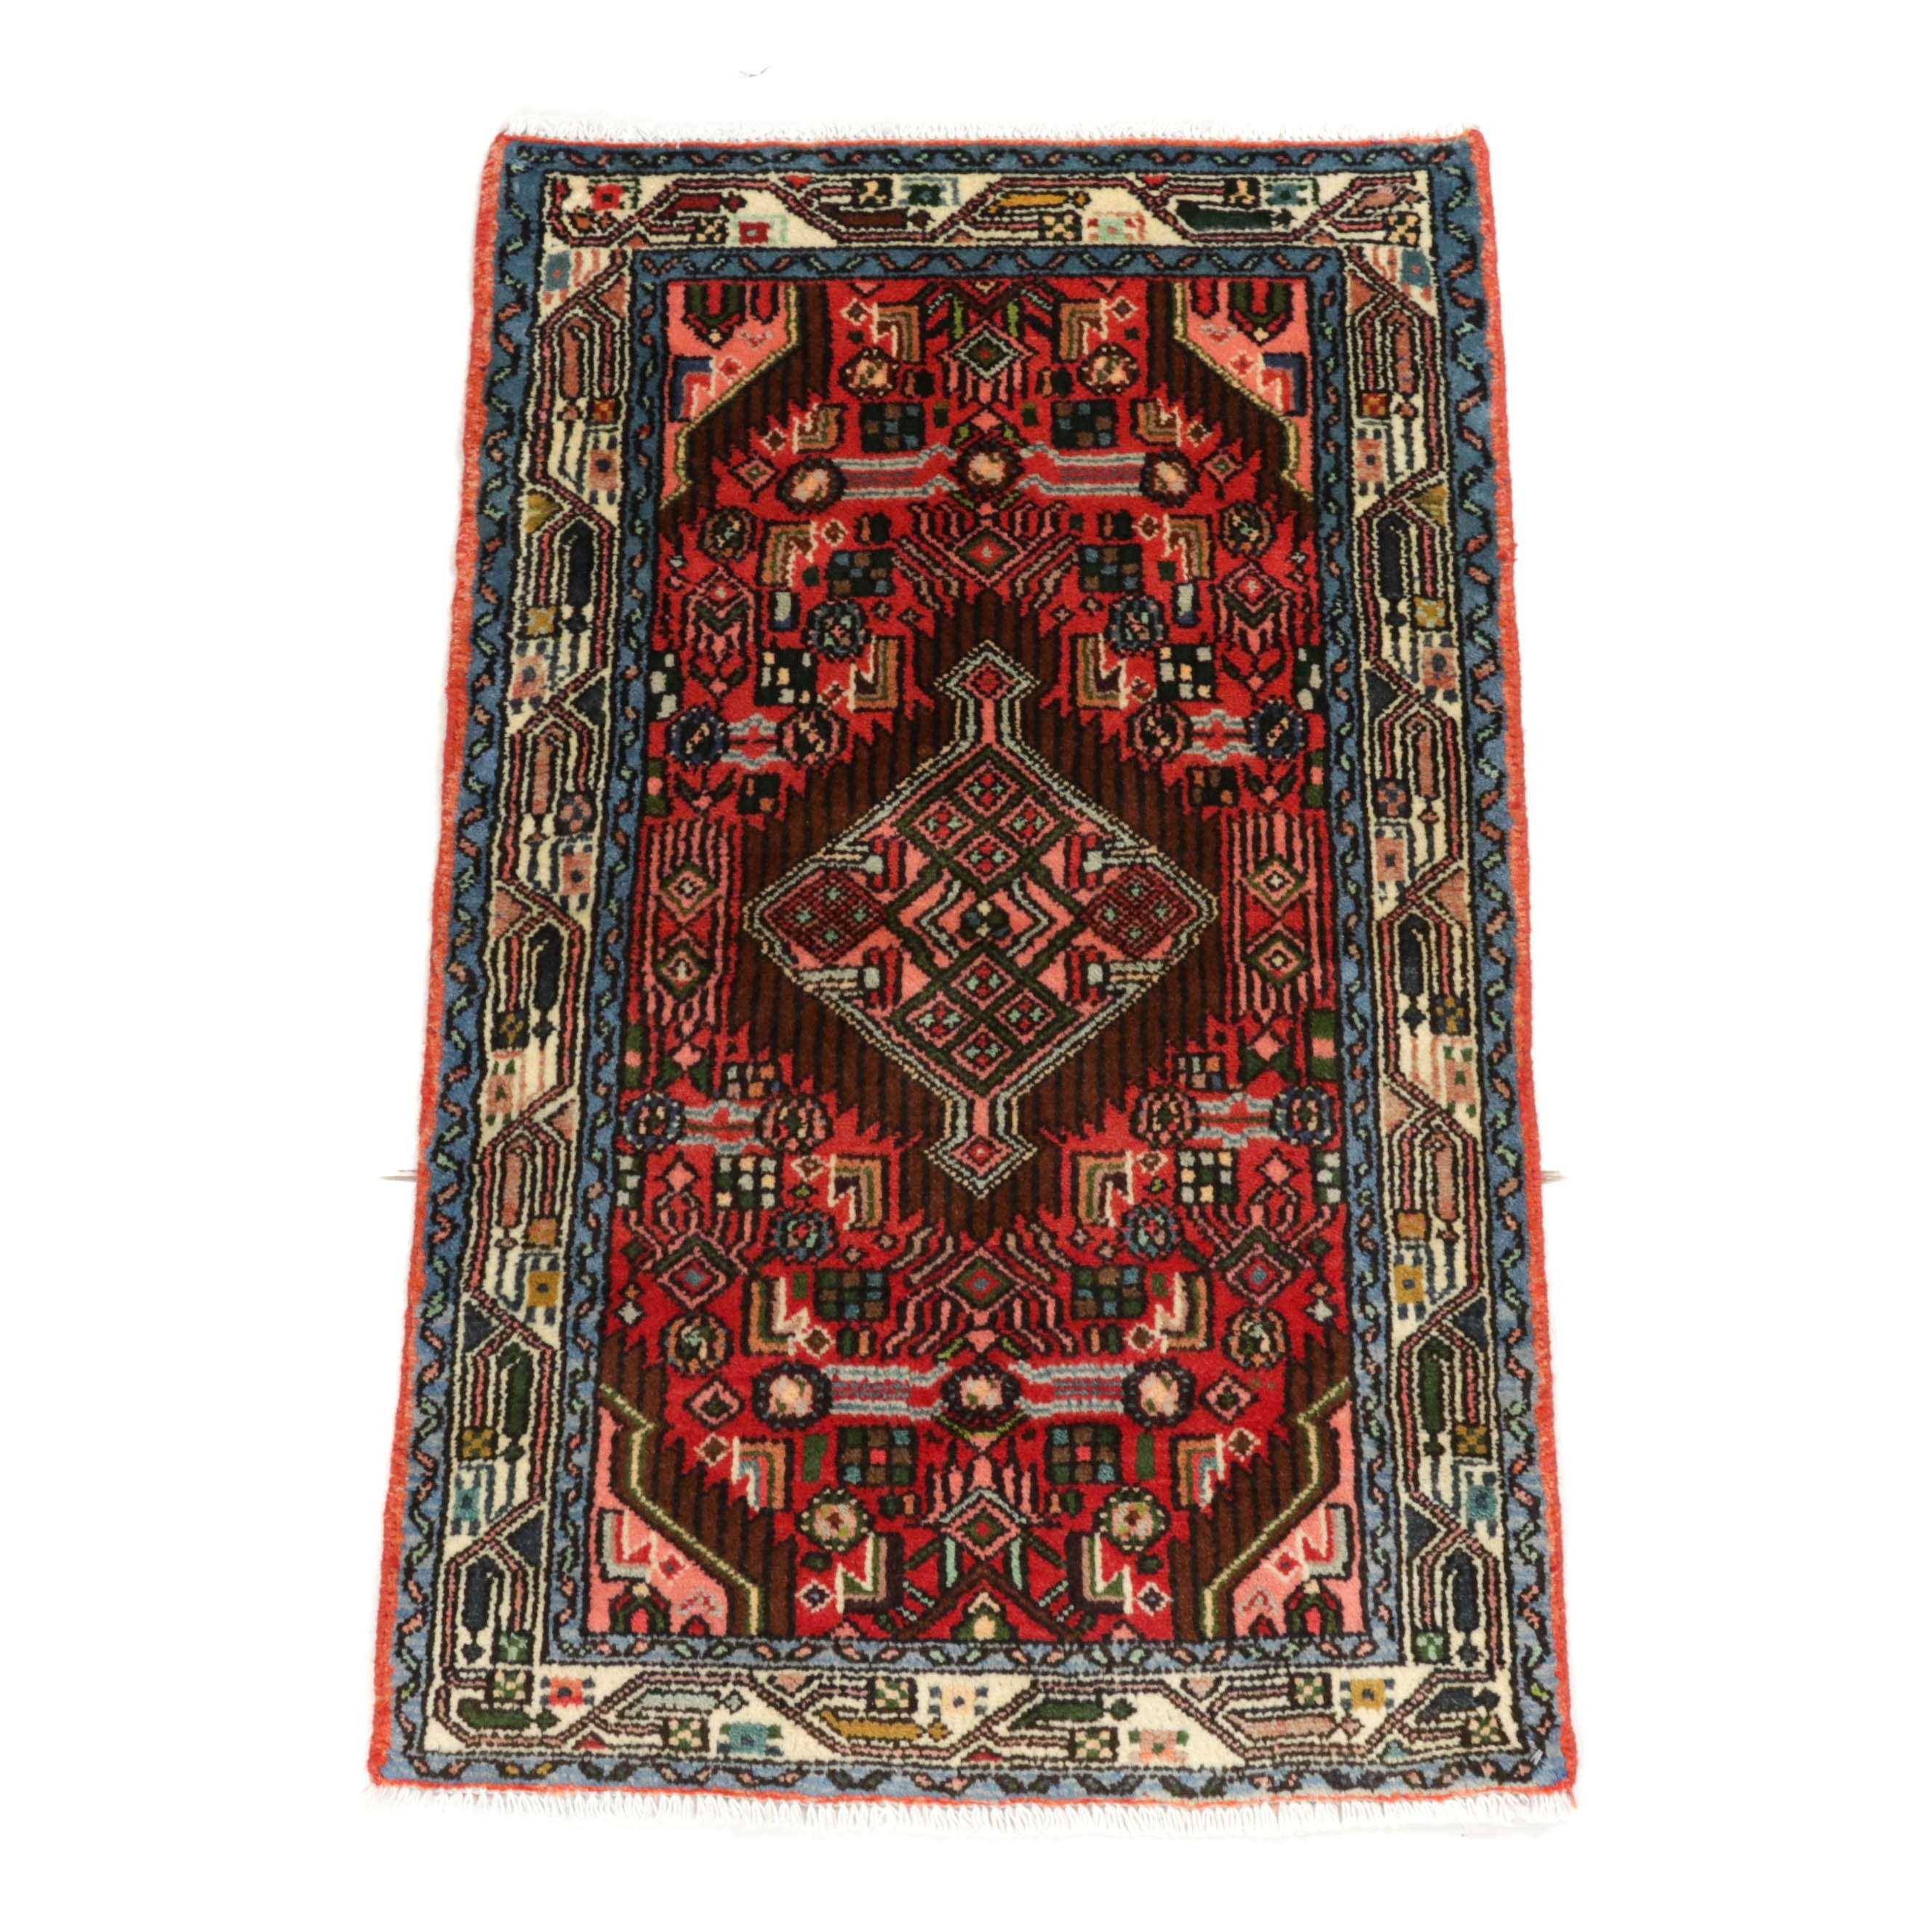 2.3' x 3.7' Hand-Knotted Persian Serab Rug, Circa 1970s